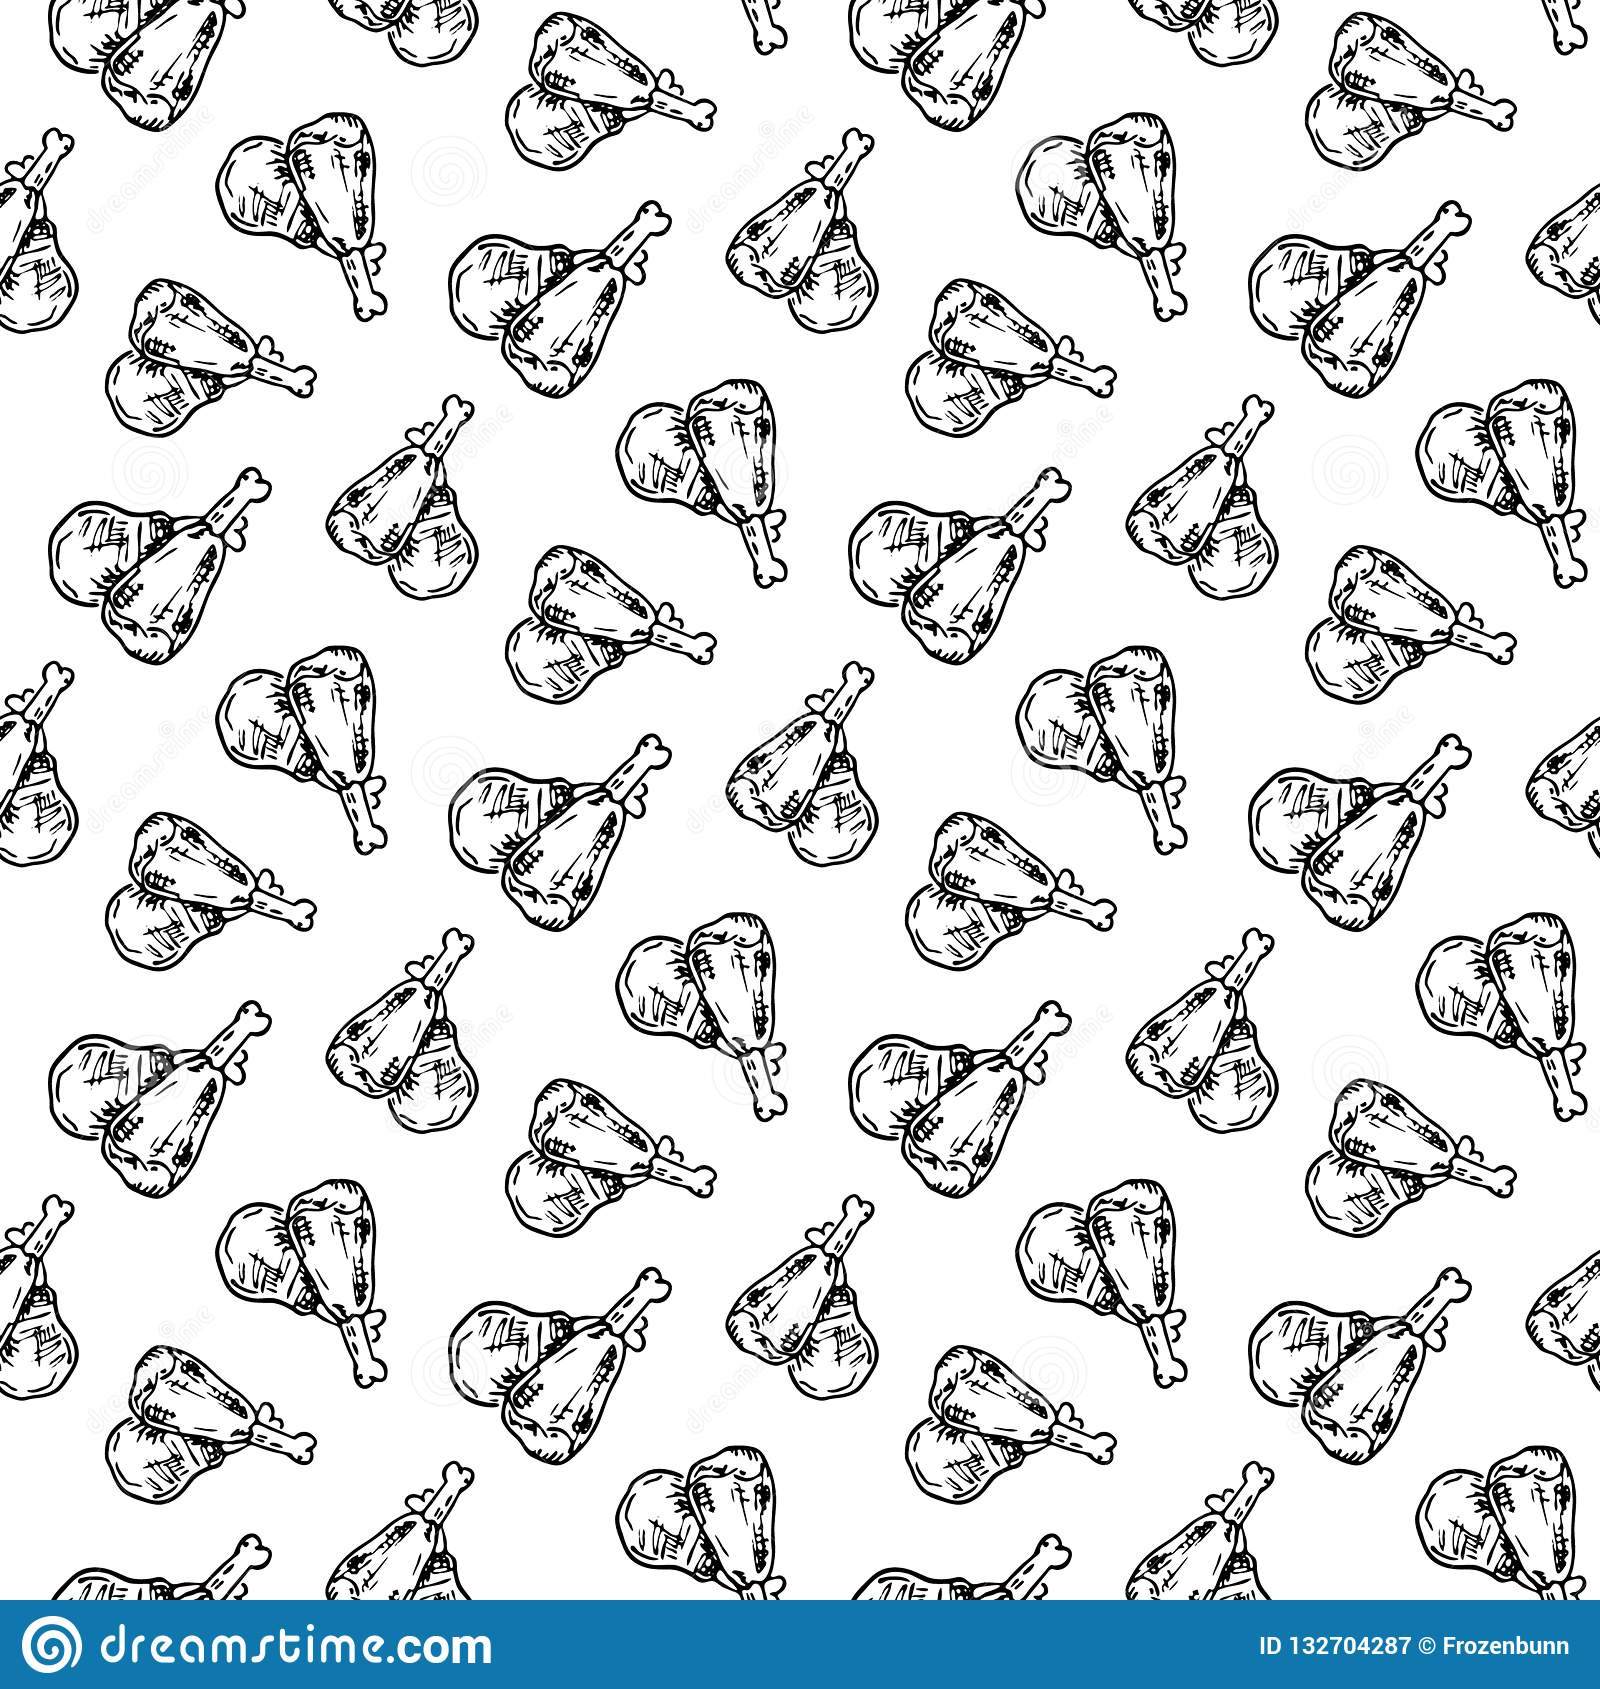 8bd43f6eb80 Seamless pattern hand drawn chicken legs. Doodle black sketch. Sign symbol.  Decoration element. Isolated on white background. Flat design.